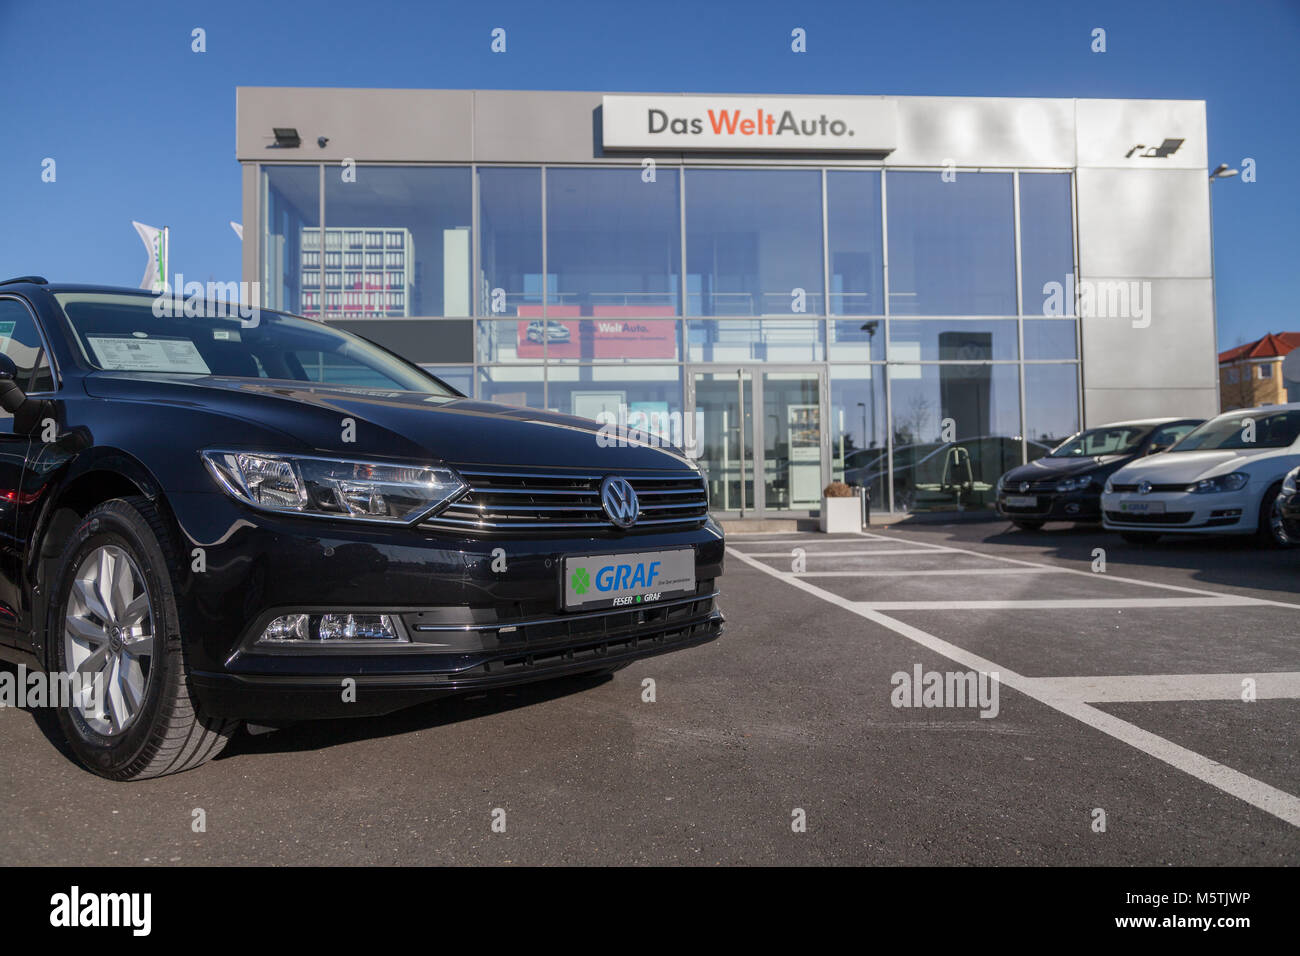 Volkswagen Diesel Emissions Scandal Stock Photos